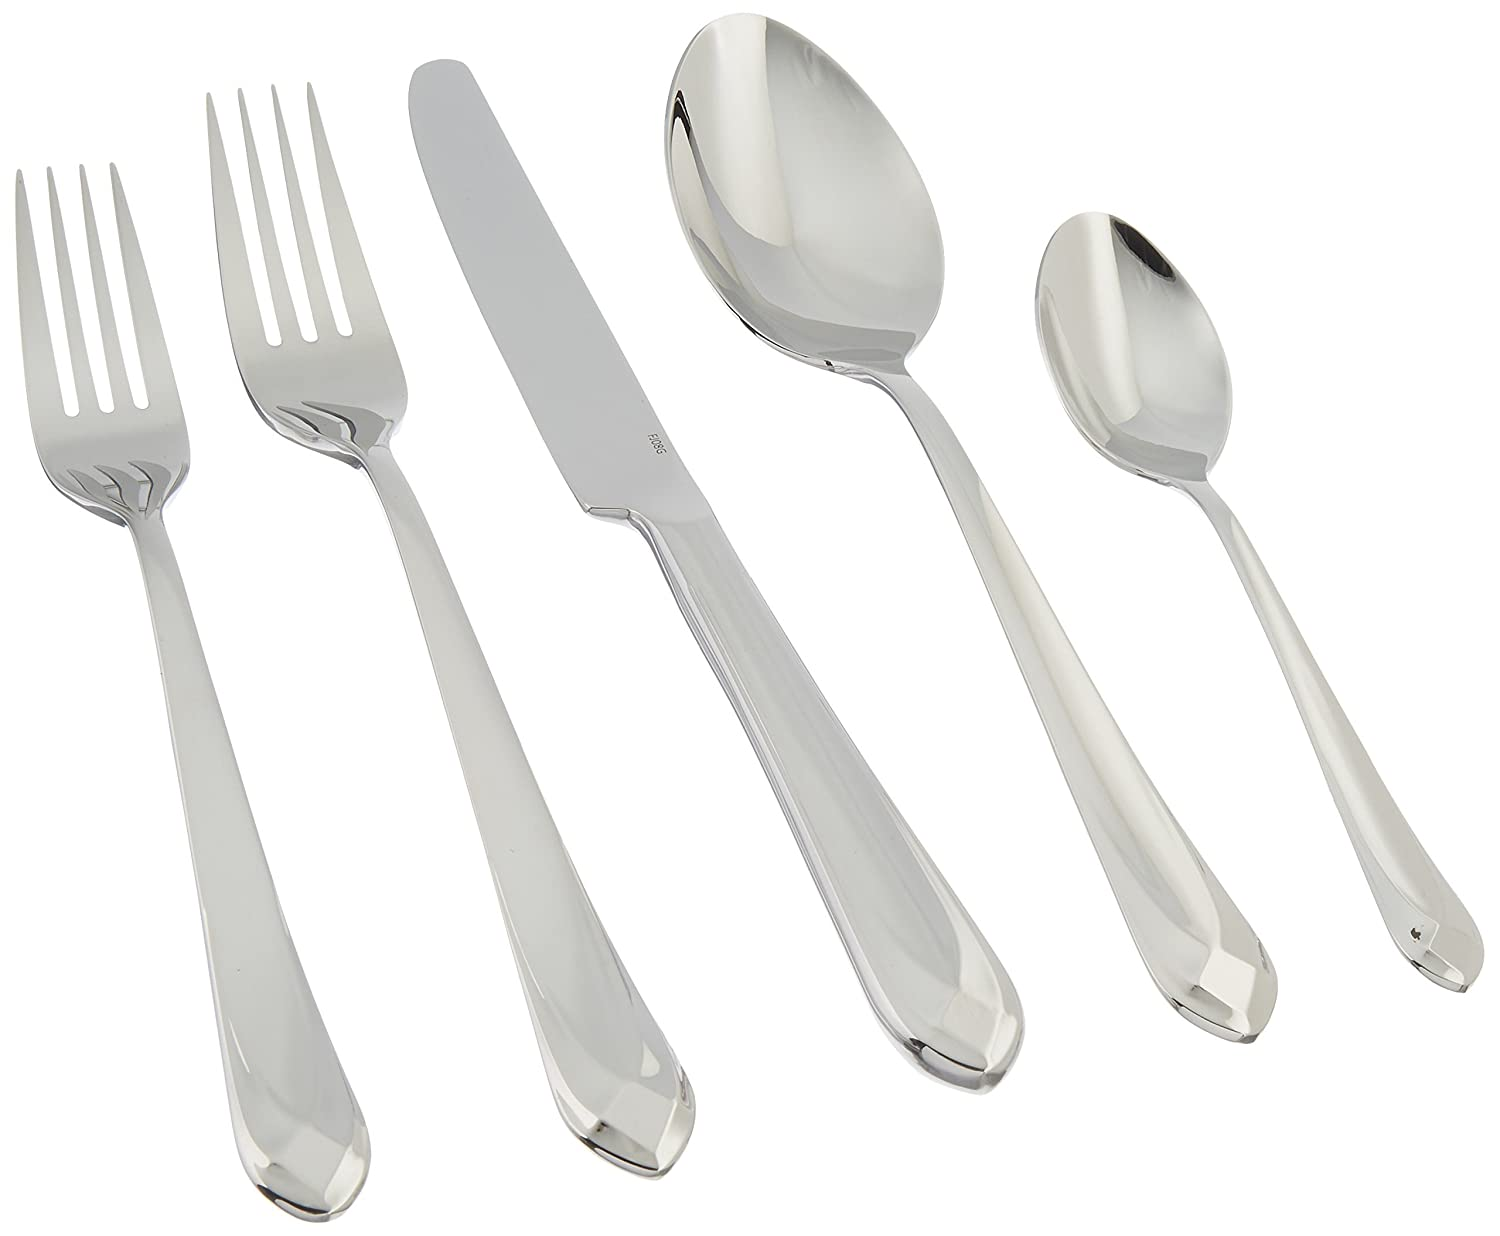 WMF Juwel 20-Piece Set, Stainless Steel Grey 8400001657